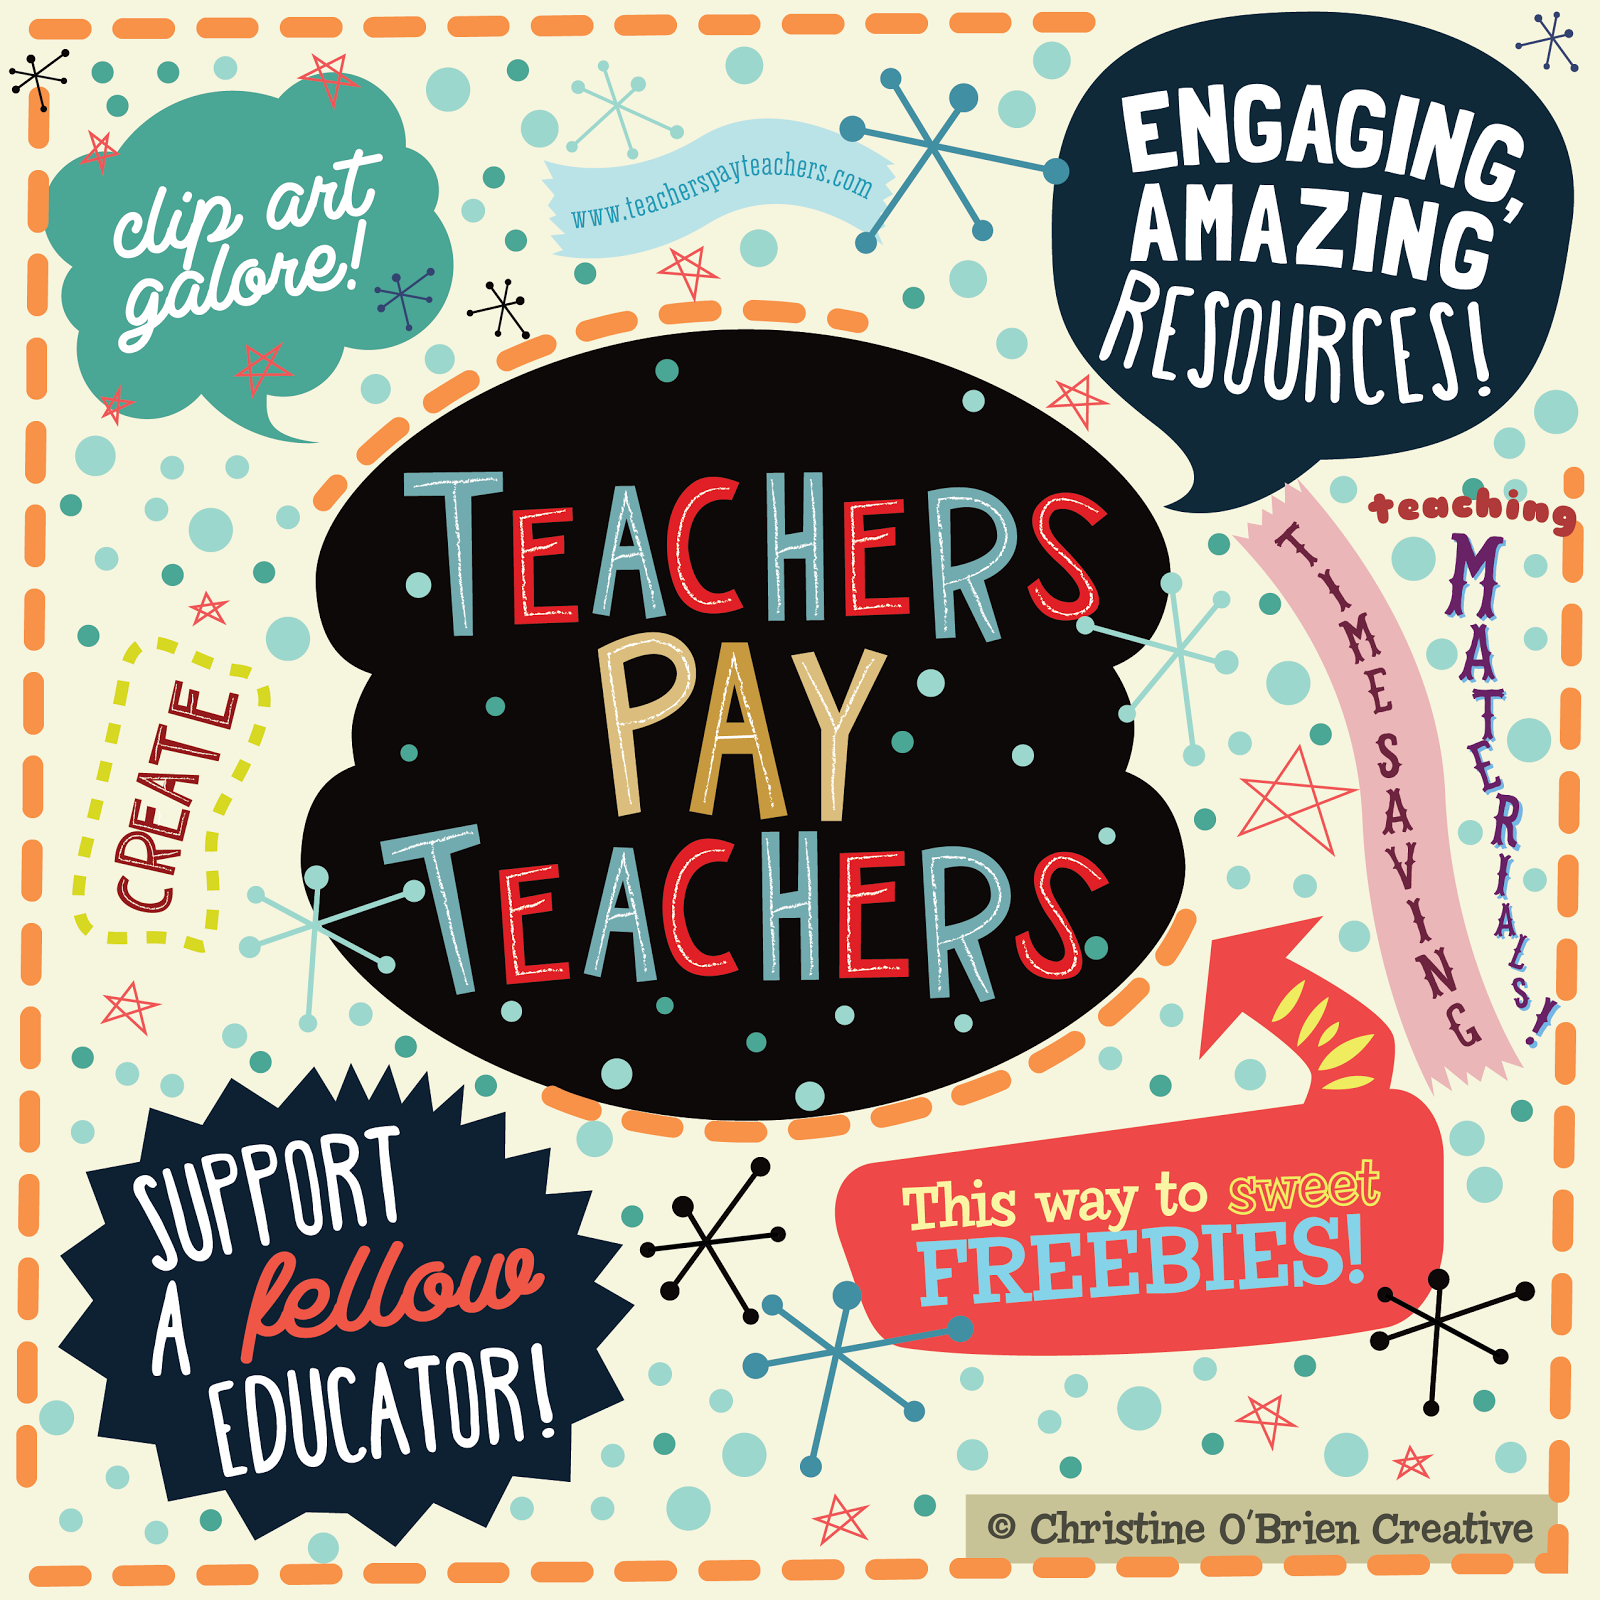 VISIT TEACHERS PAY TEACHERS